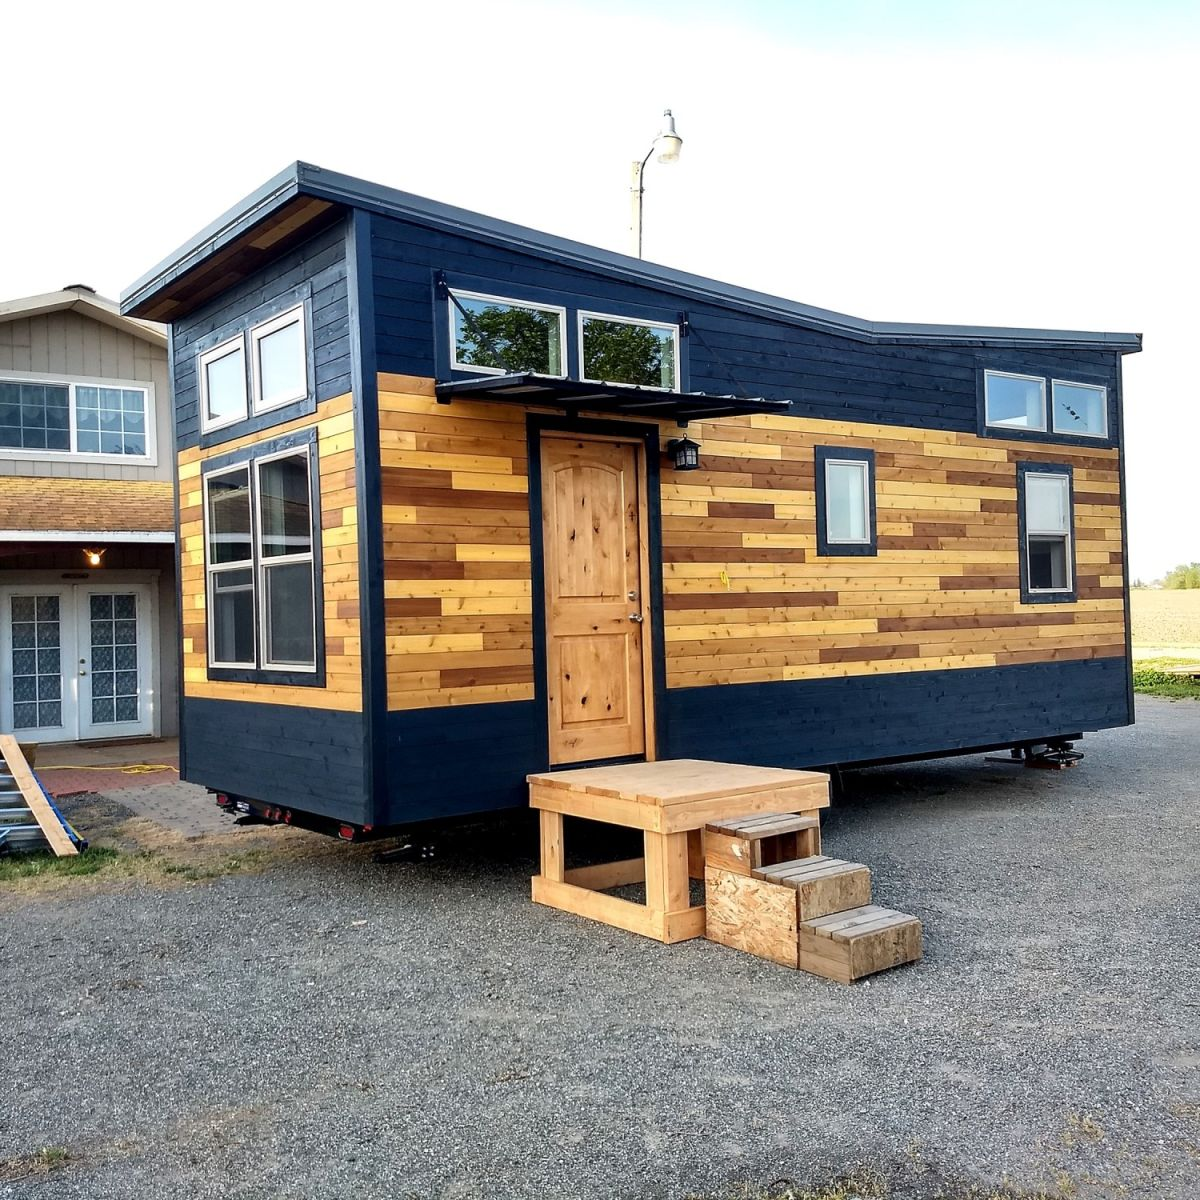 Tiny Home Designs: Contemporary Tiny House